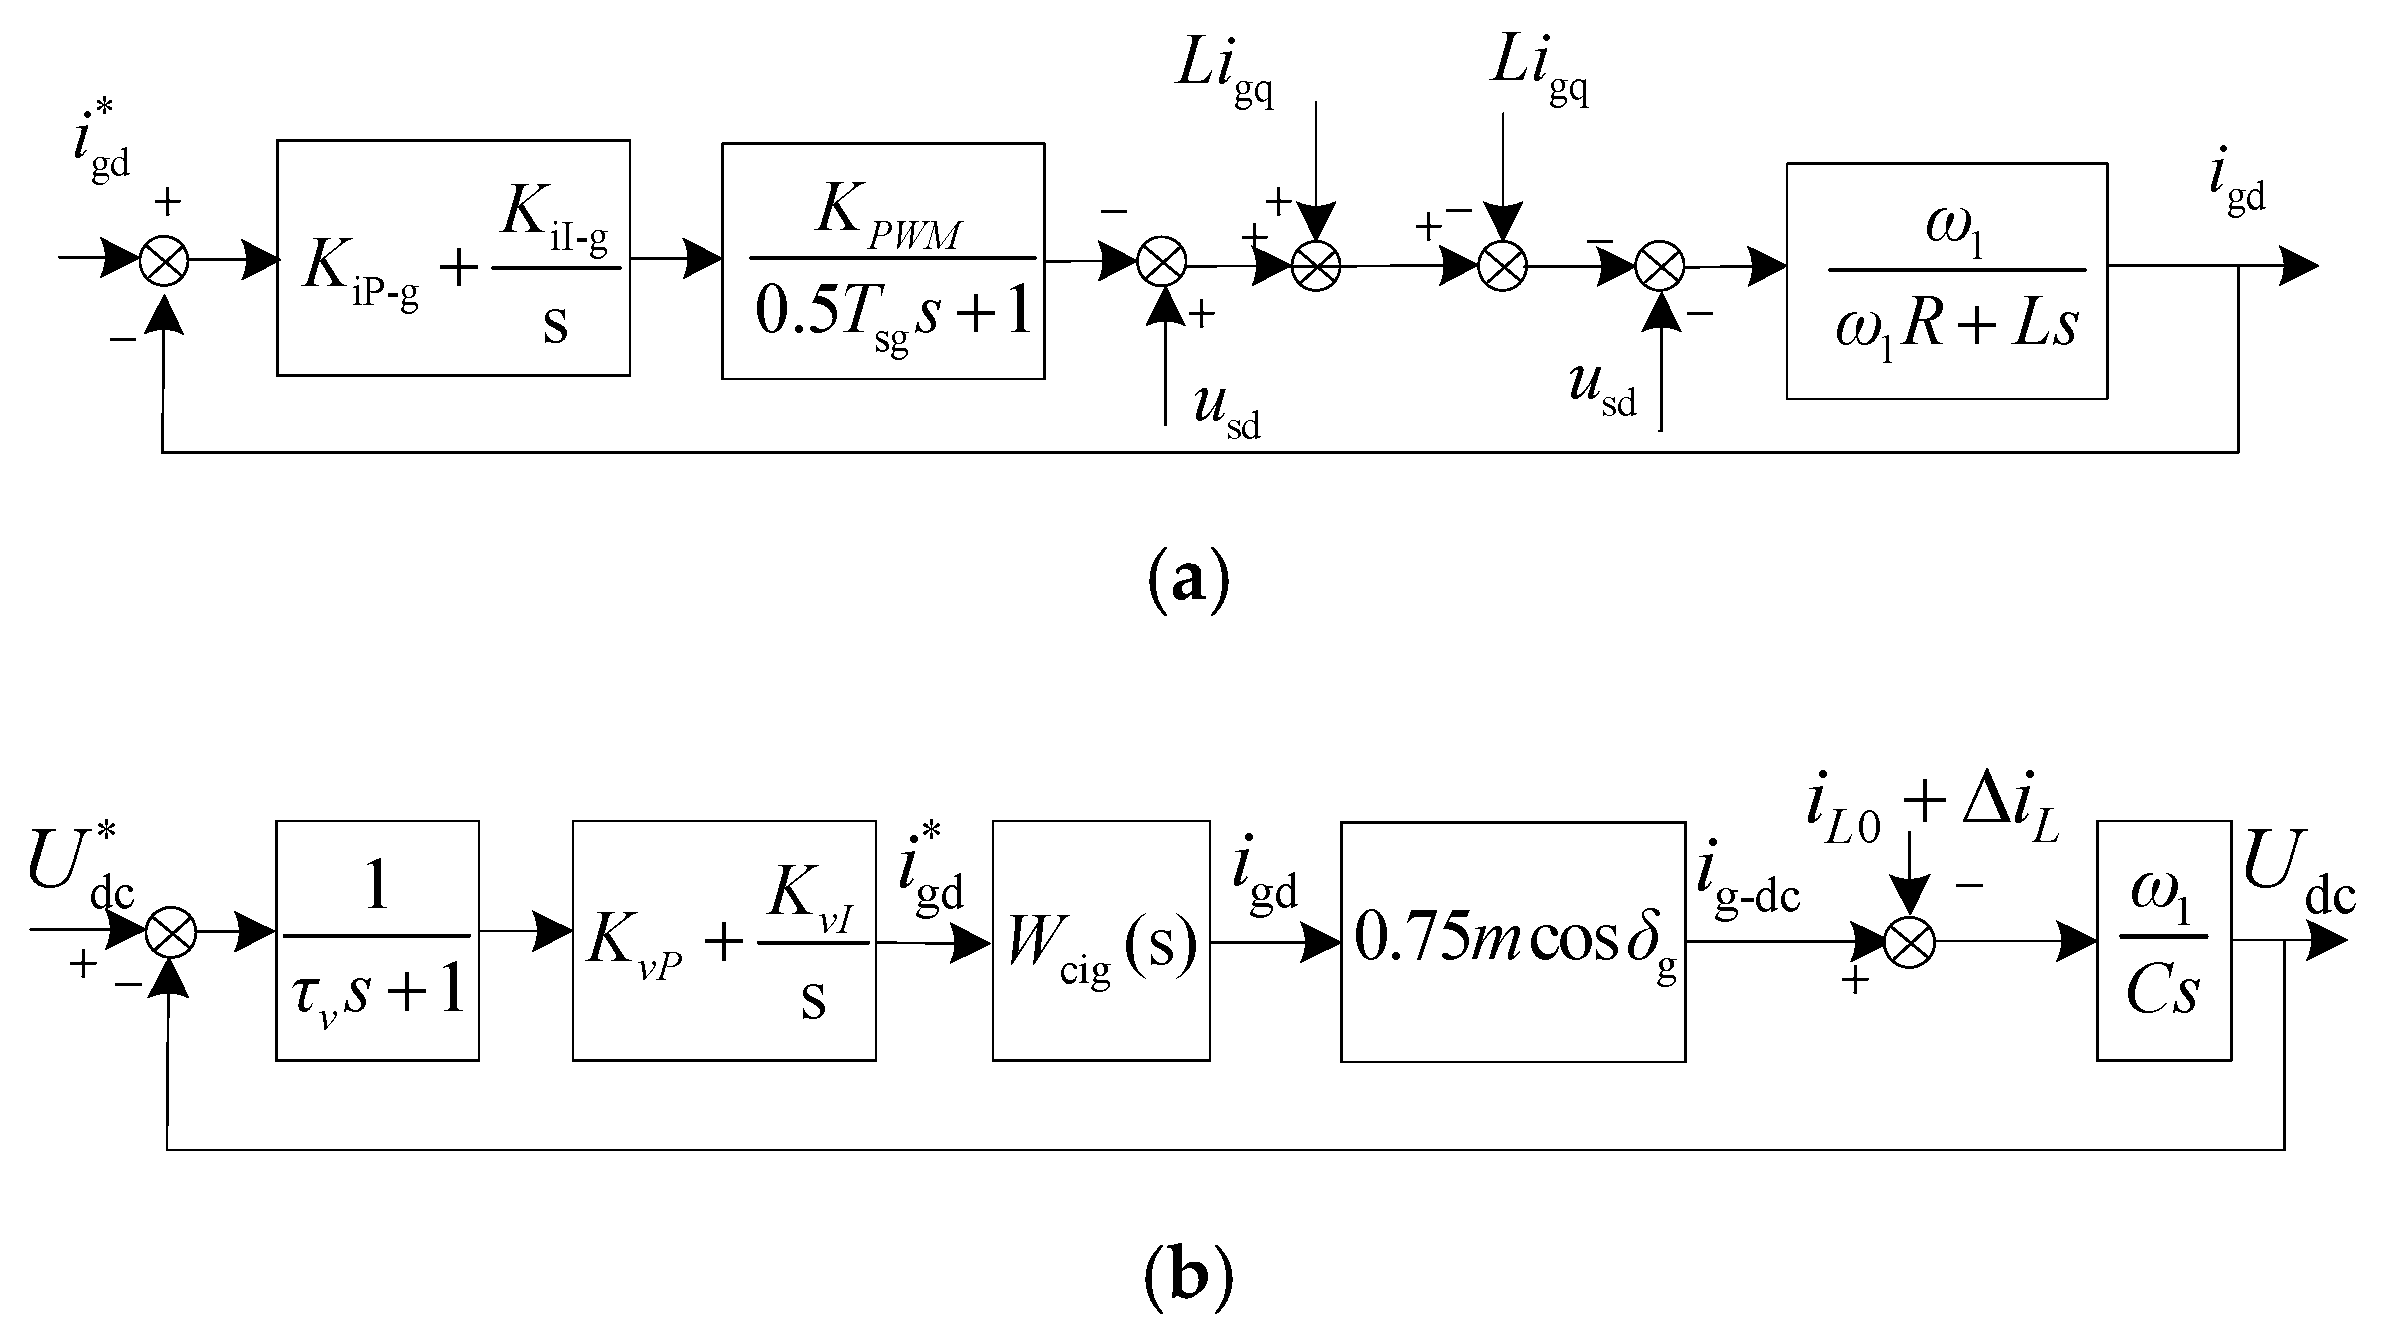 Energies Free Full Text Short Circuit Current Calculation And Of A Boost Converter With External Mosfet For Protection No